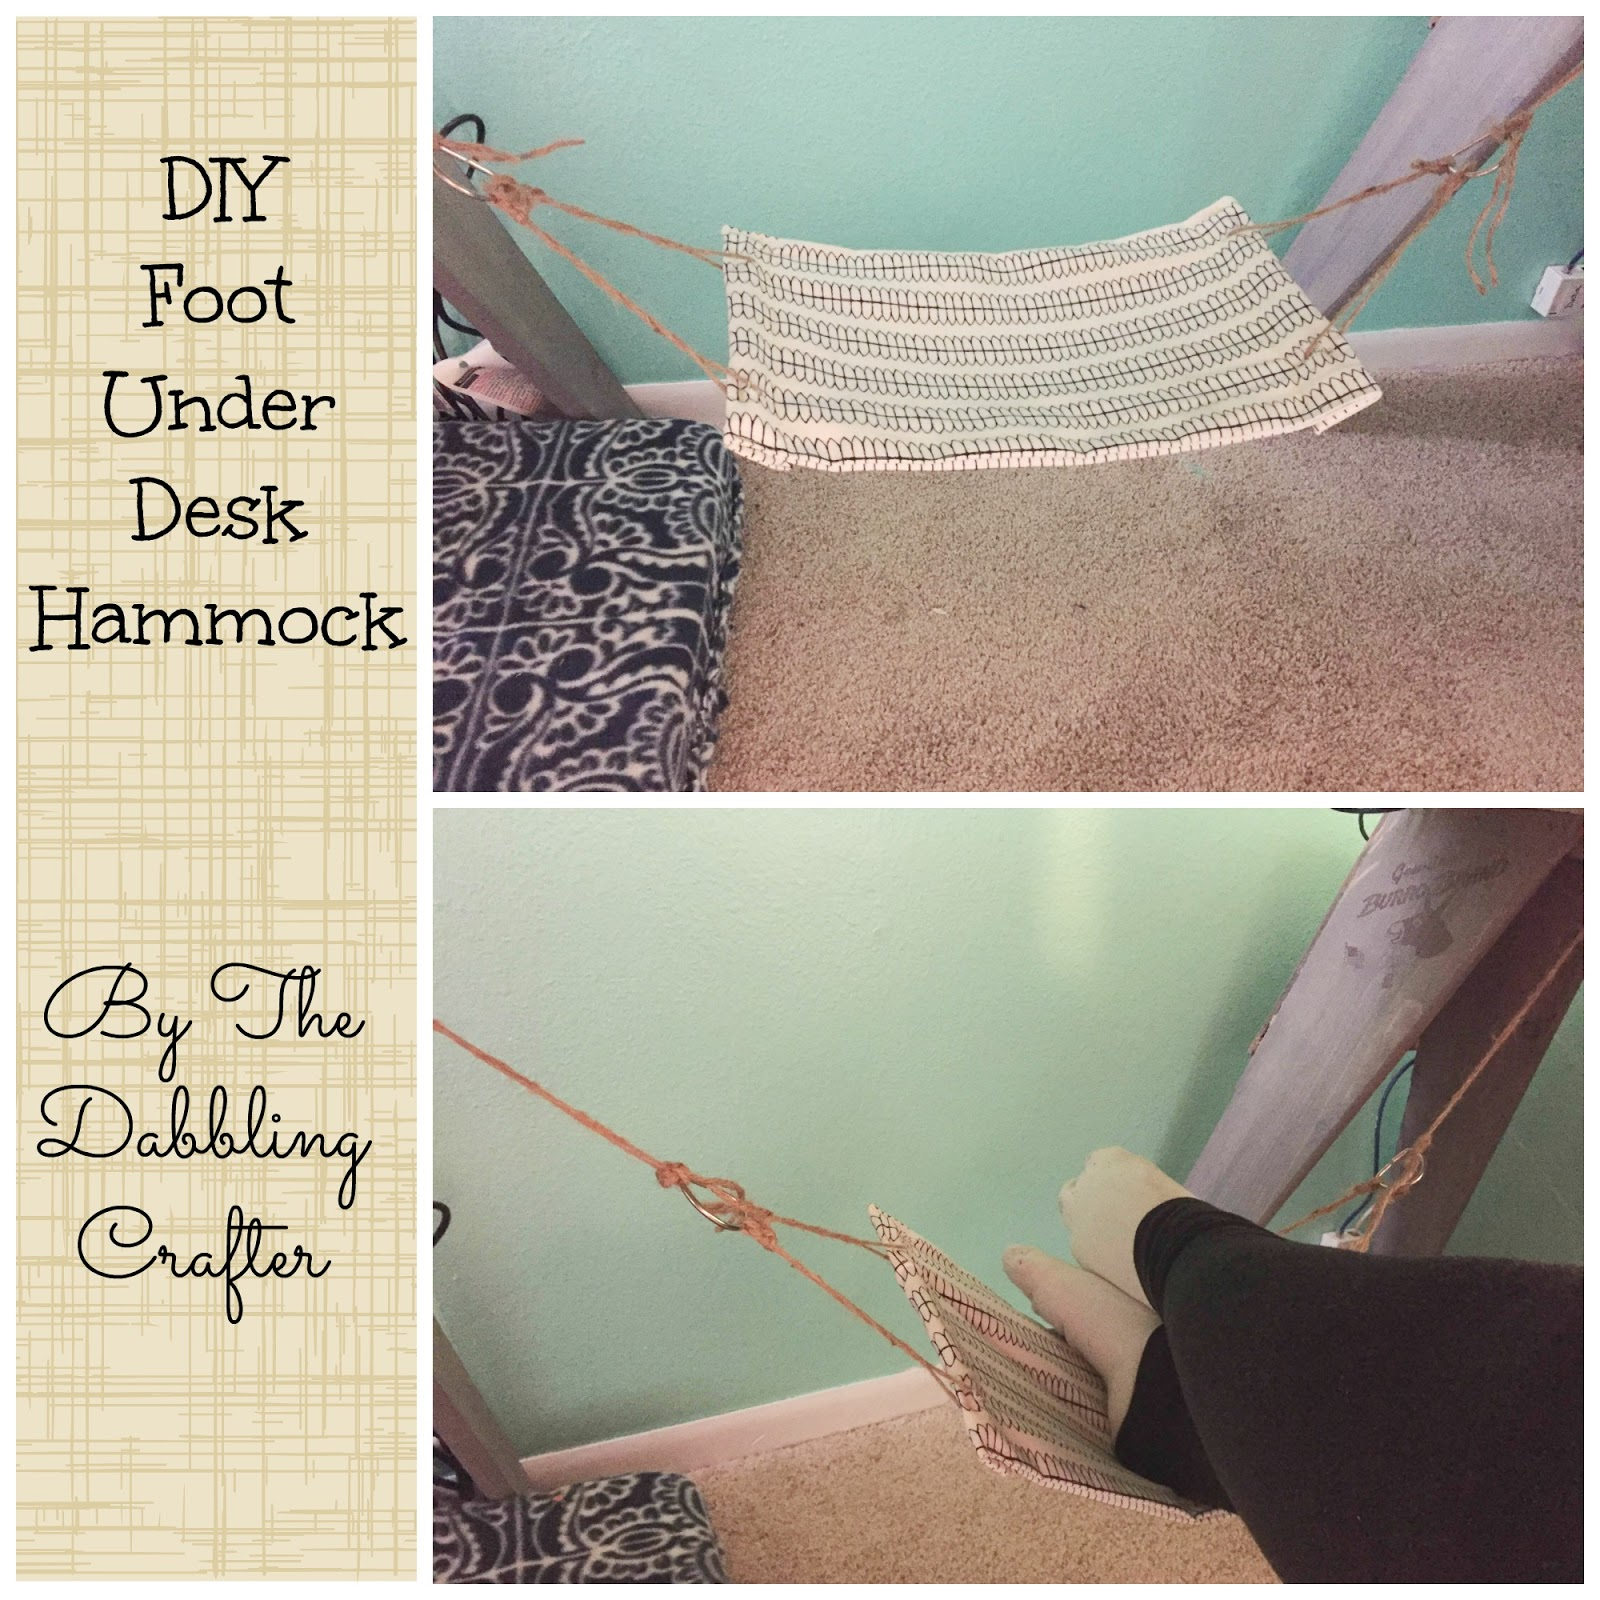 our home tends to be the place where lost and lonely pets find their forever home  it u0027s an occupational hazard being a veterinarian u0027s wife  the dabbling crafter  diy sunday  diy foot  under desk  hammock  rh   thedabblingcrafter